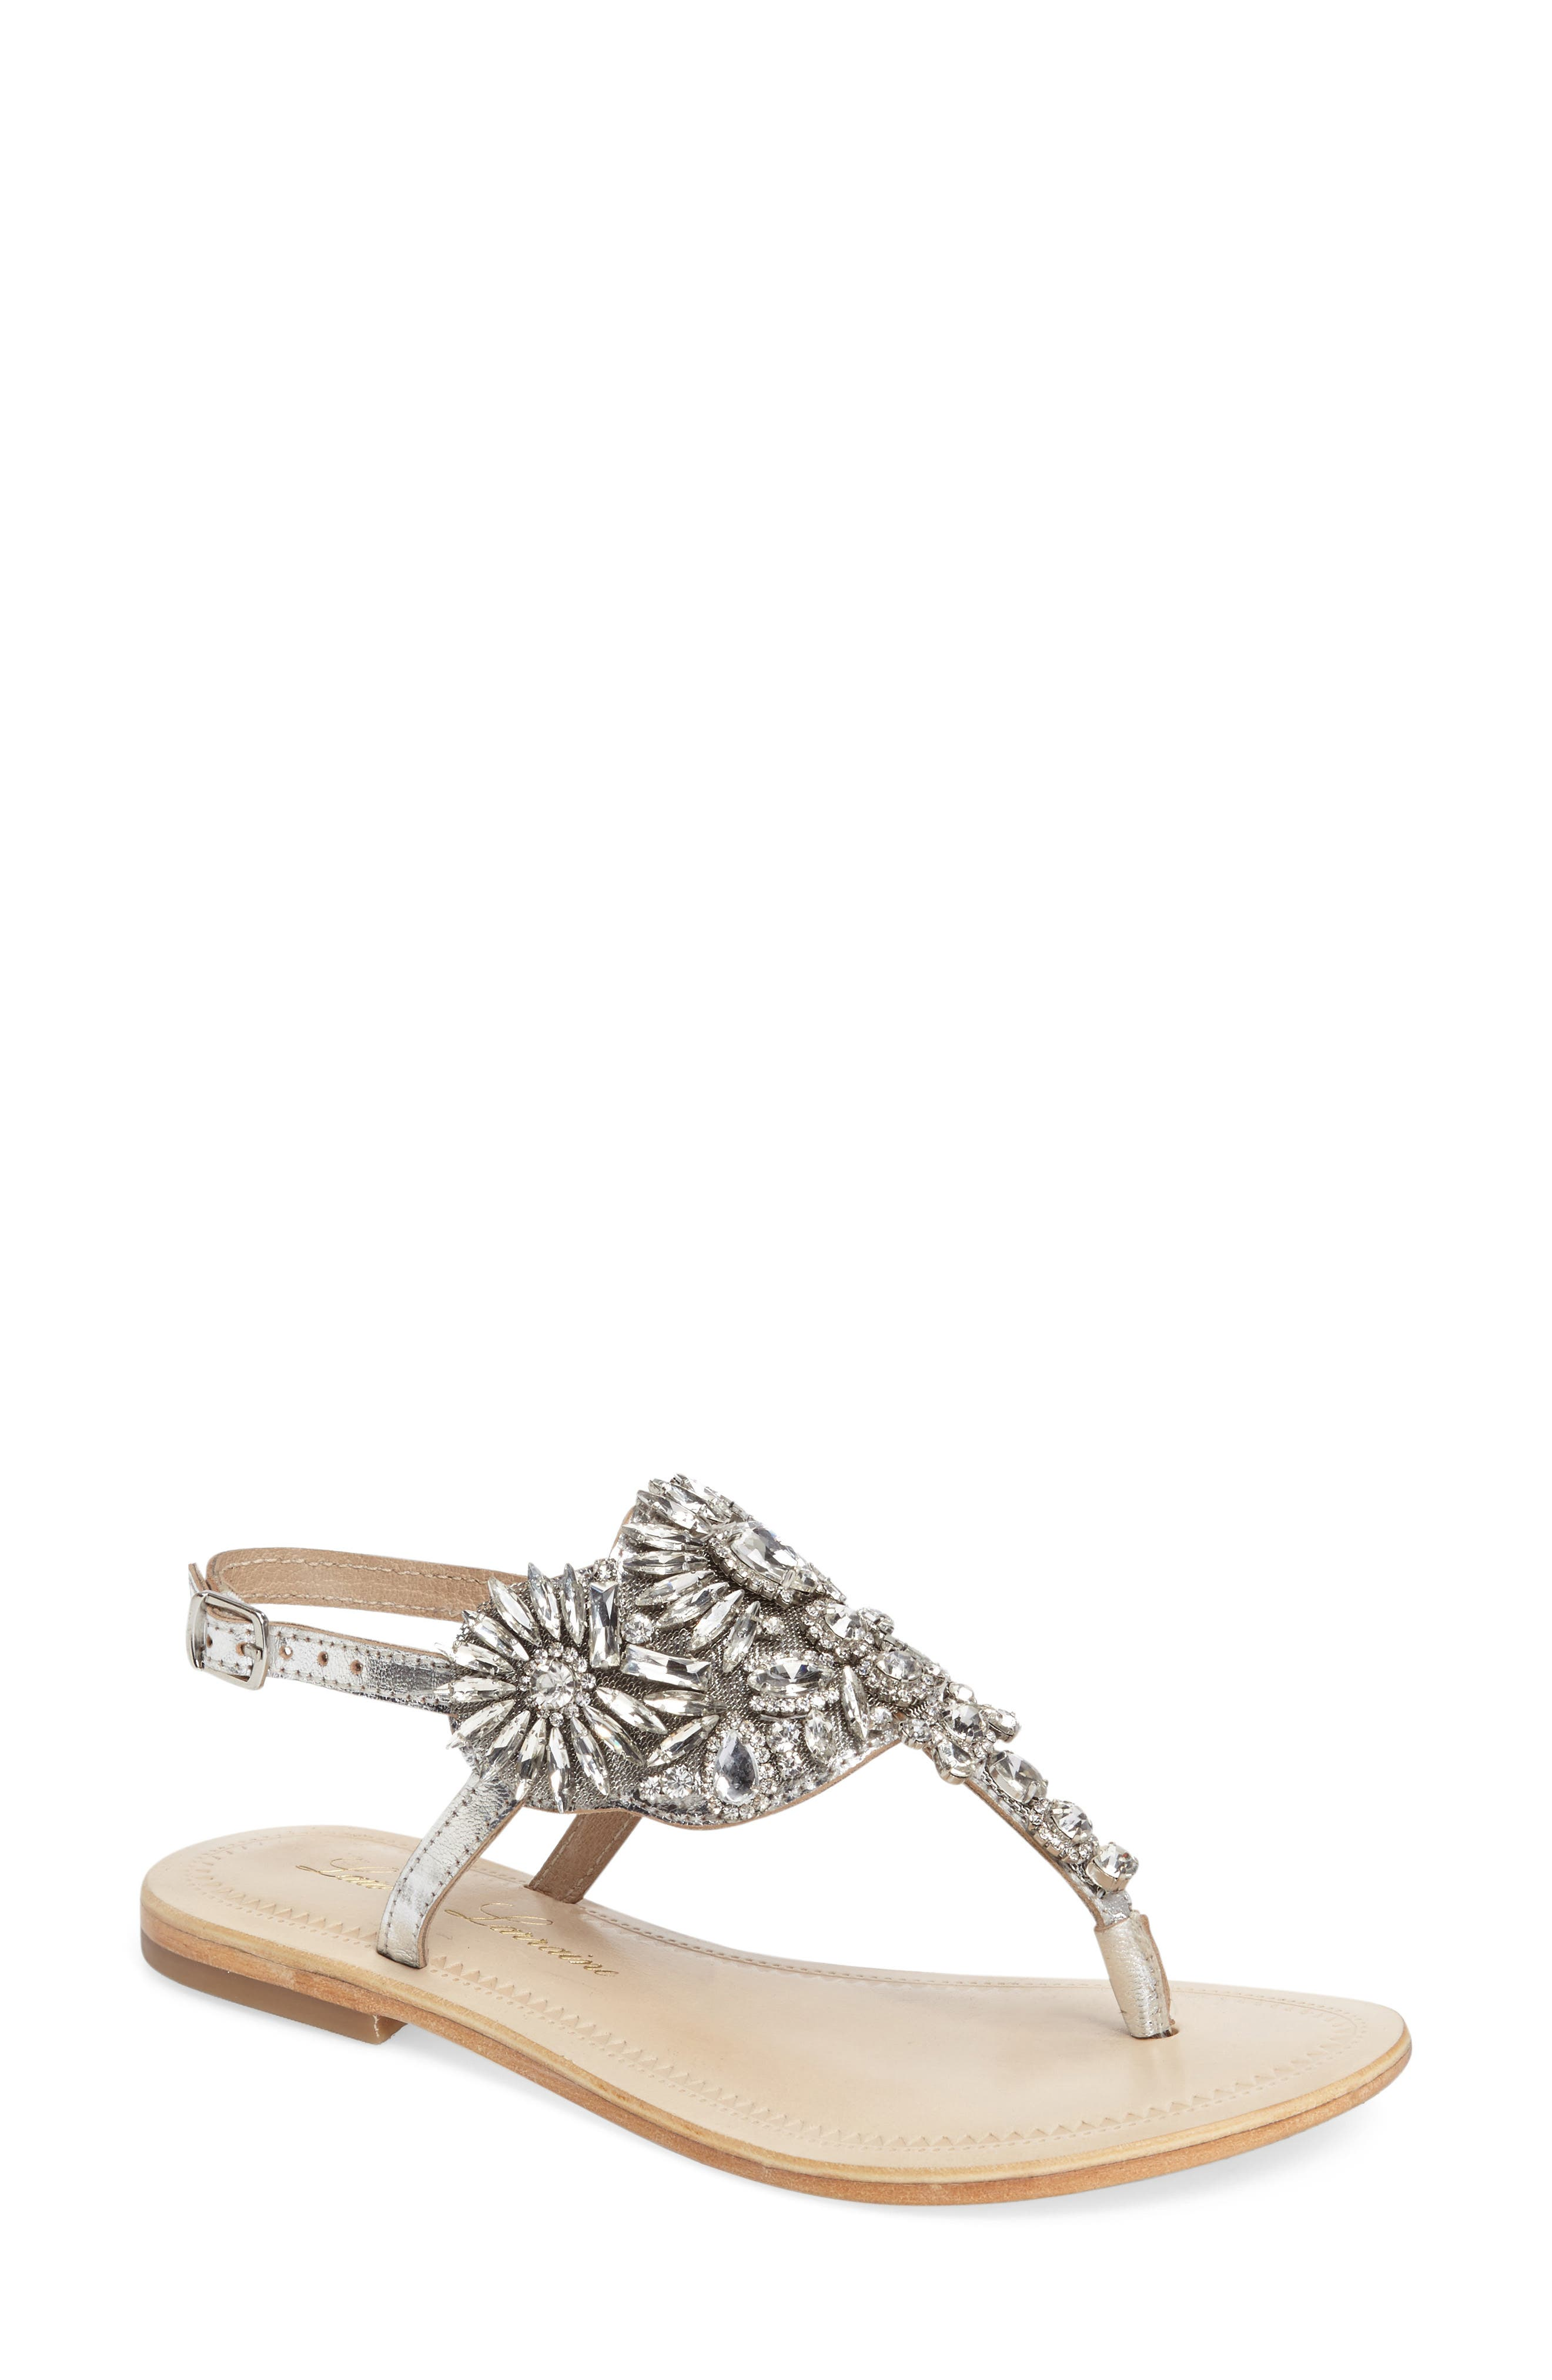 Vera Embellished Sandal,                         Main,                         color, SILVER LEATHER